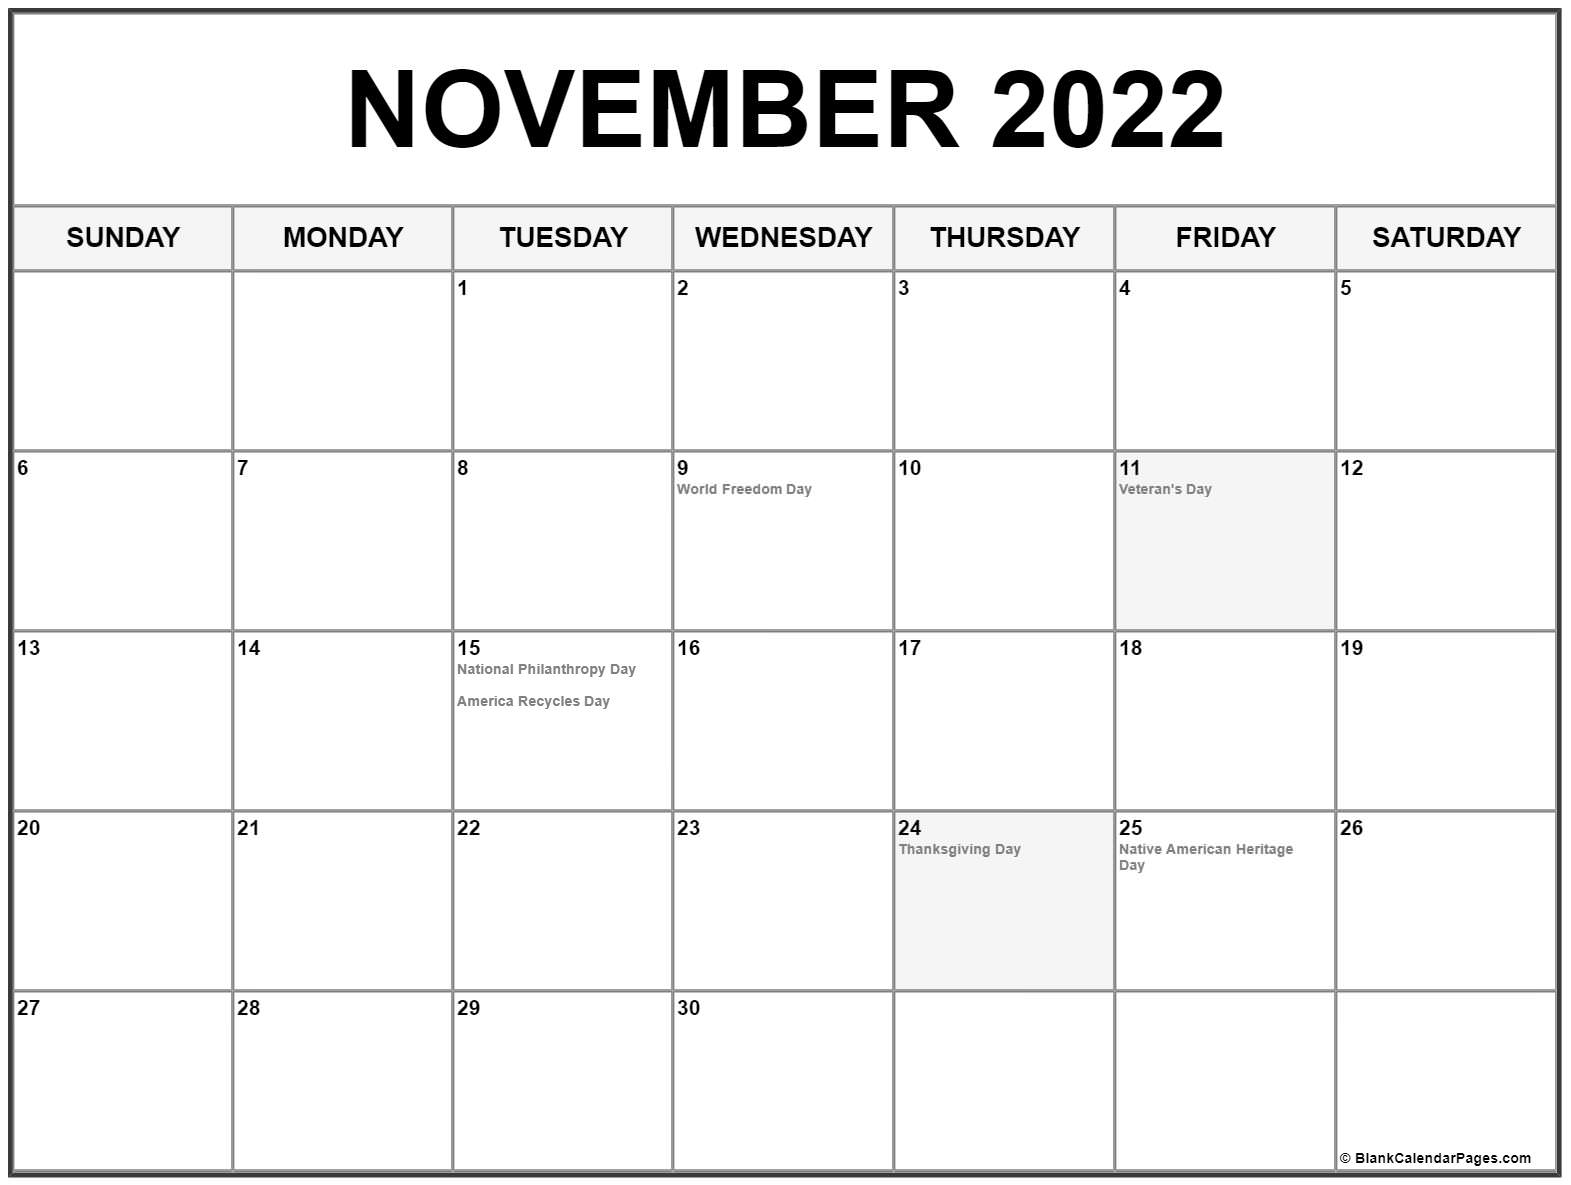 Sometimes it is handy to have a calendar for your current month on your cubical wall. November 2022 calendar with holidays